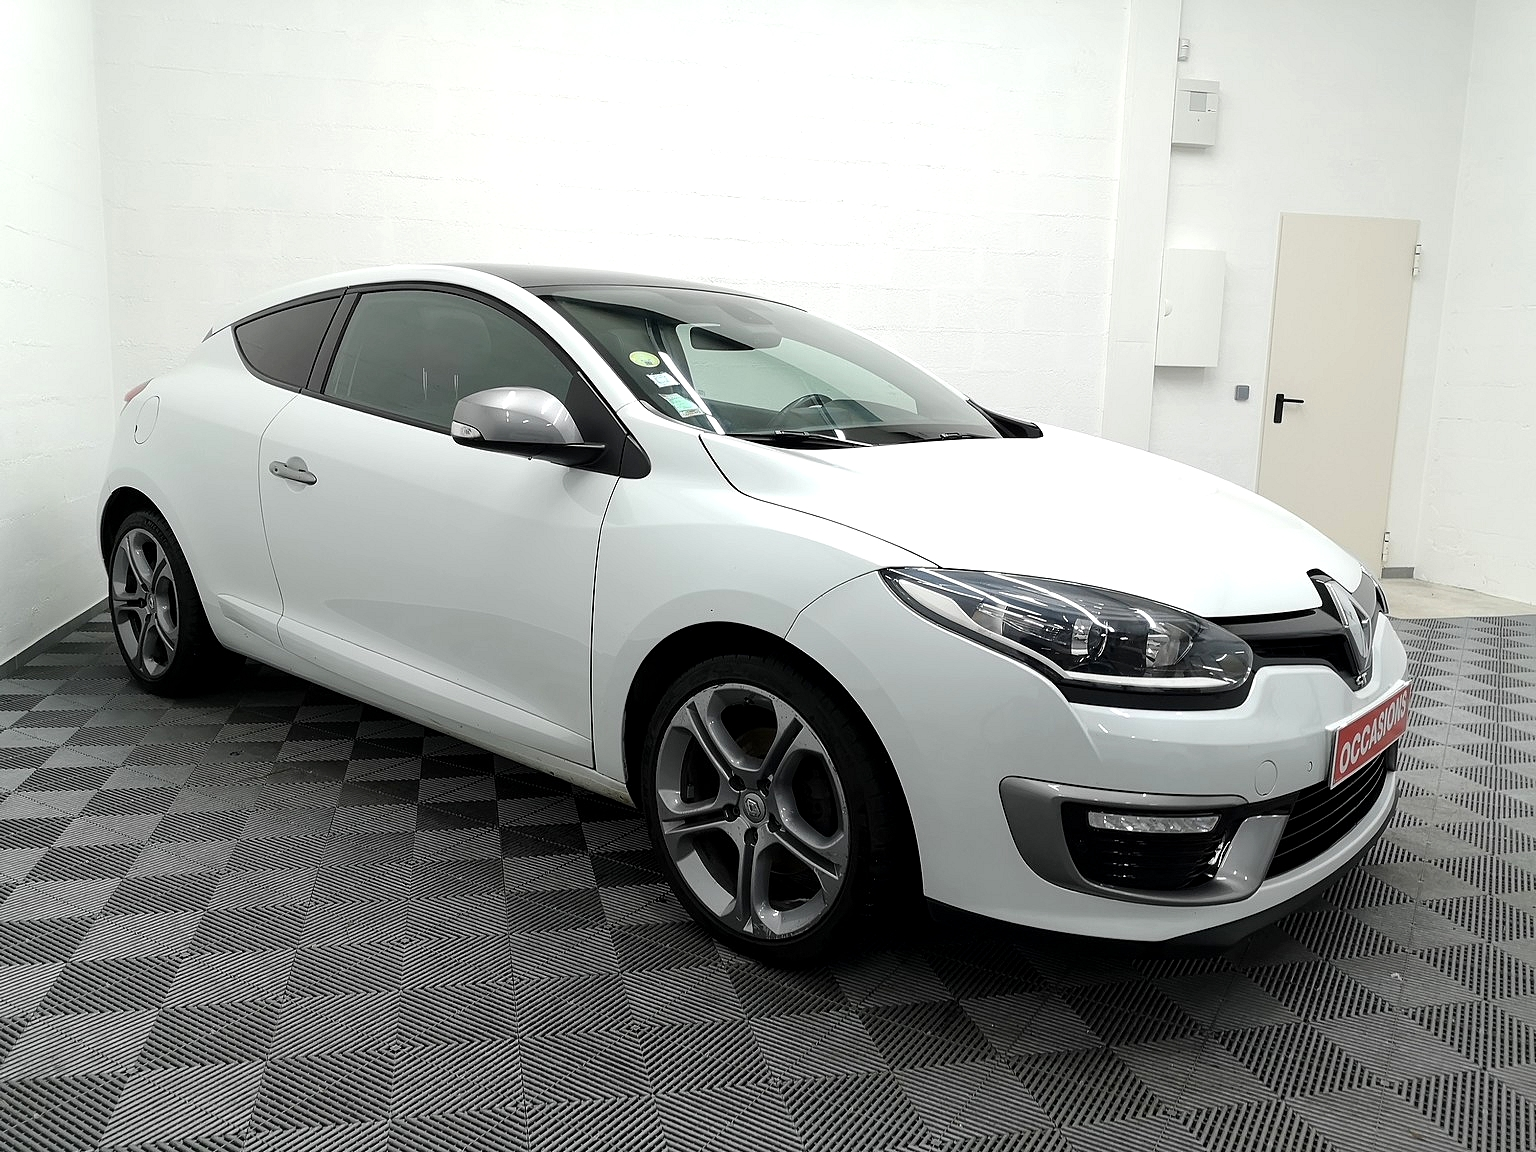 RENAULT MEGANE III COUPE 2015 à 9990 € - Photo n°2